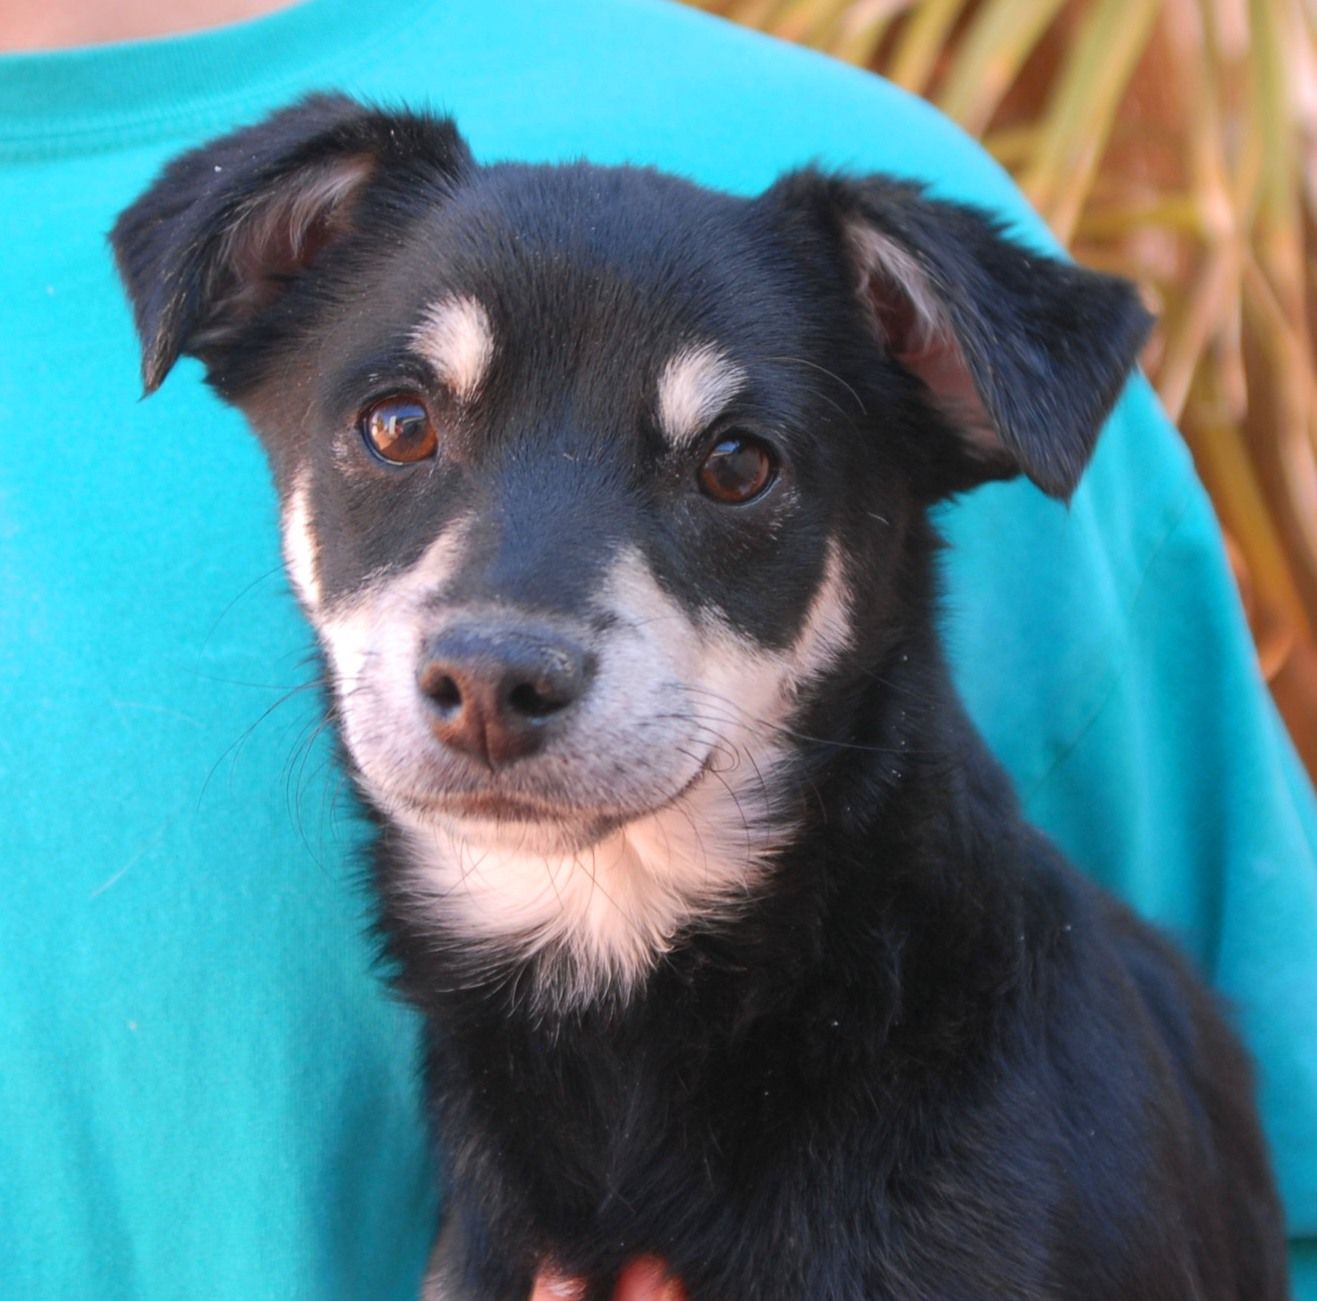 Prince is a baby boy, a junior puppy of 9 months, debuting for adoption this afternoon at Nevada SPCA (www.nevadaspca.org).  He is eager to learn about people and wants your guidance to understand this crazy world.  Prince loves other playful dogs and likes to act silly.  He is a Chihuahua & Toy mix, now neutered.  Prince was found abandoned at a gas station near a dangerous Vegas intersection and he had no sign of responsible ownership.